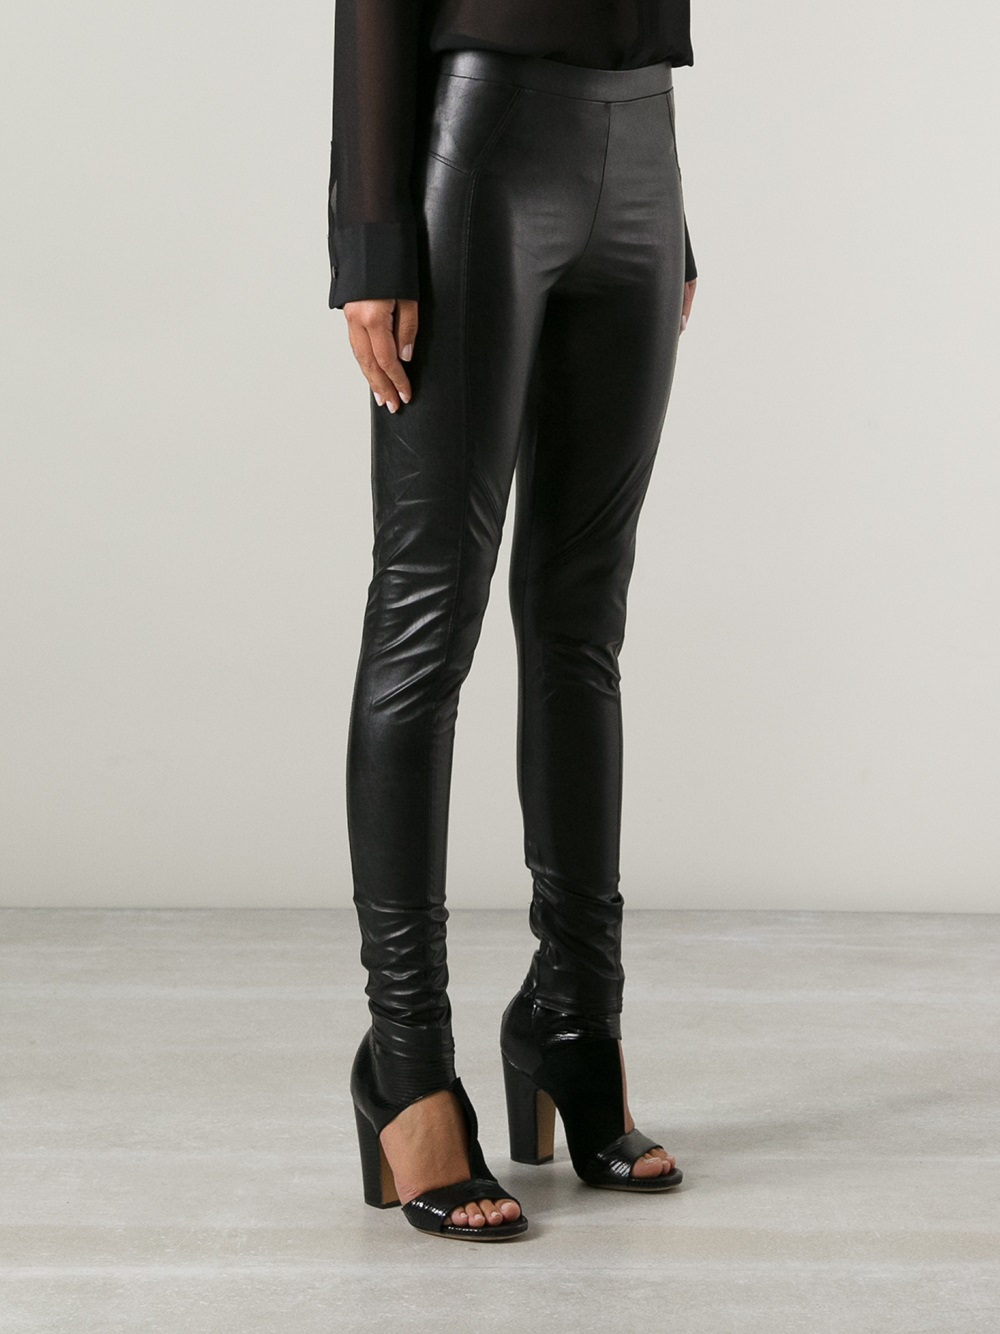 0307272e634df Gallery. Previously sold at: Farfetch · Women's Faux Leather Pants Women's Leather  Leggings